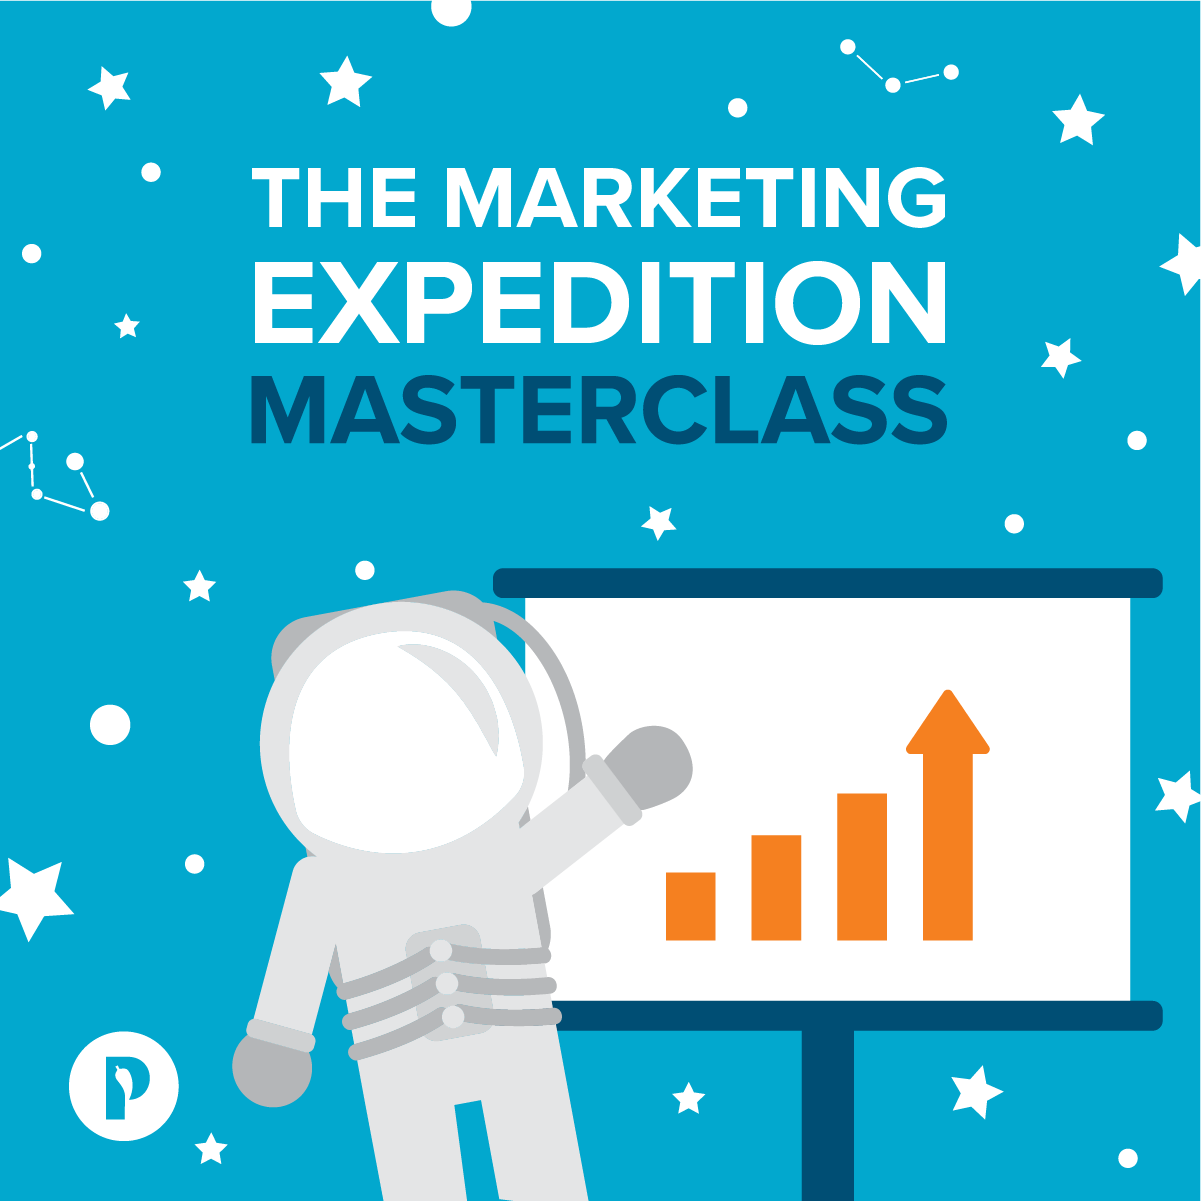 The Marketing Expedition Masterclass with Astronaut teaching